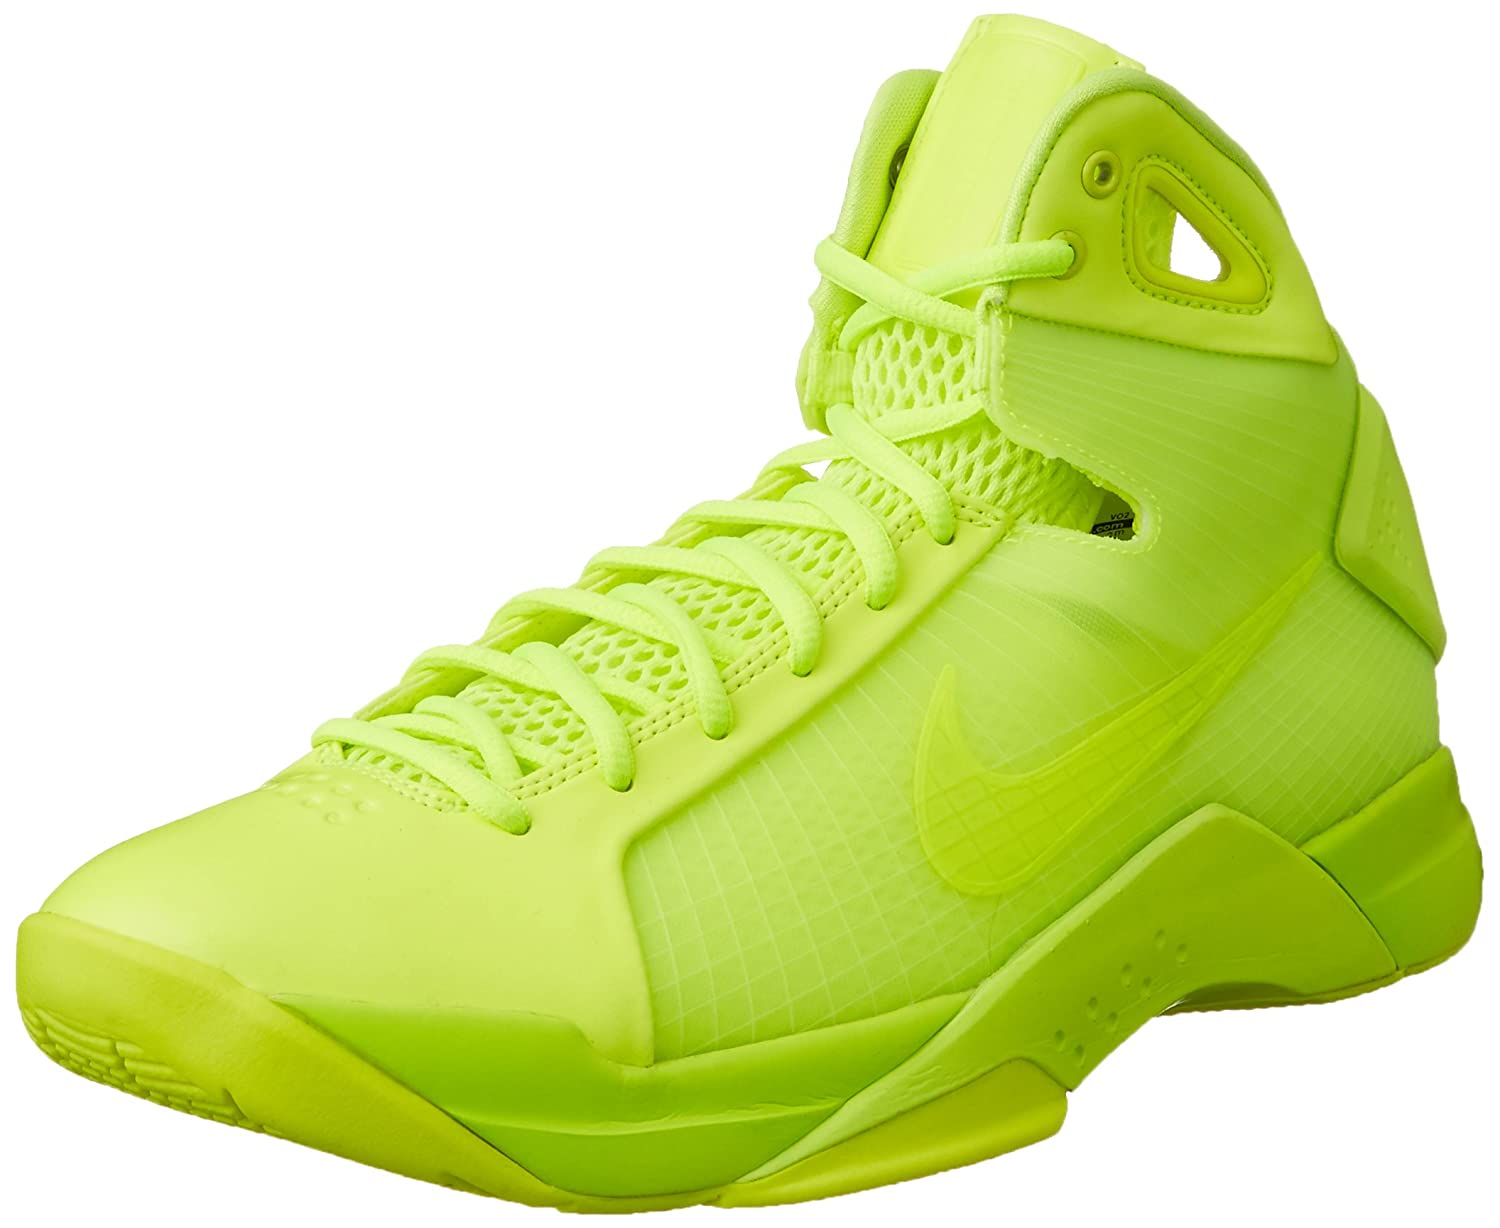 9b1c9b6cb088 Nike Hyperdunk  08 Men s Basketball Shoes 820321 700 (8)  Buy Online at Low  Prices in India - Amazon.in